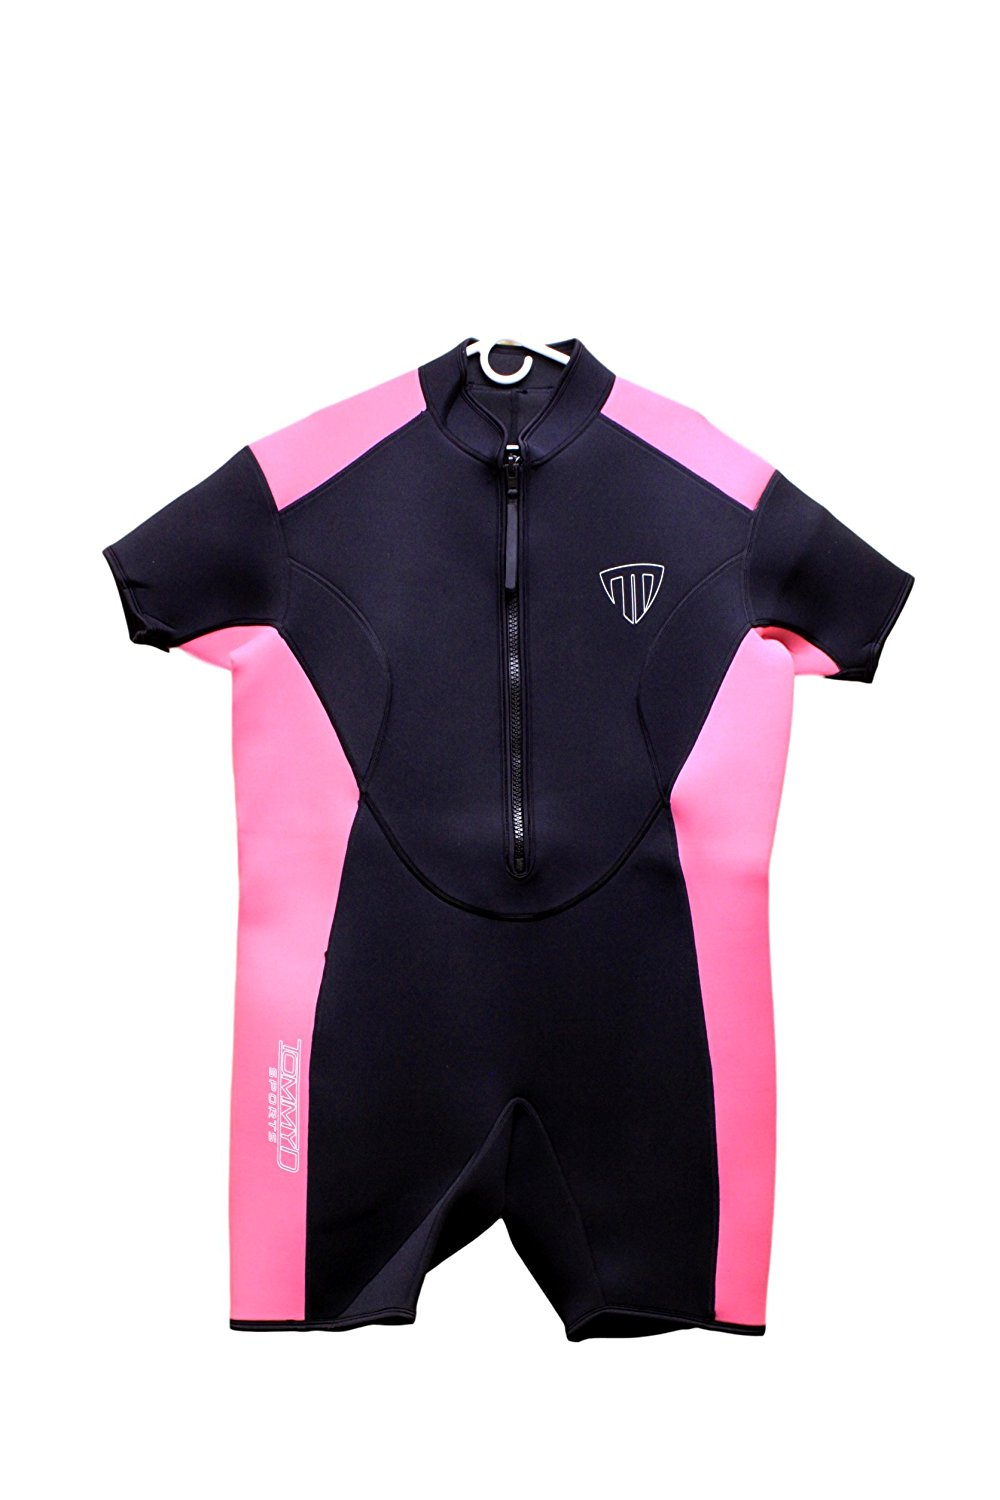 0972160272 Get Quotations · Women s Shorty Wetsuit - Front Zip - 2400